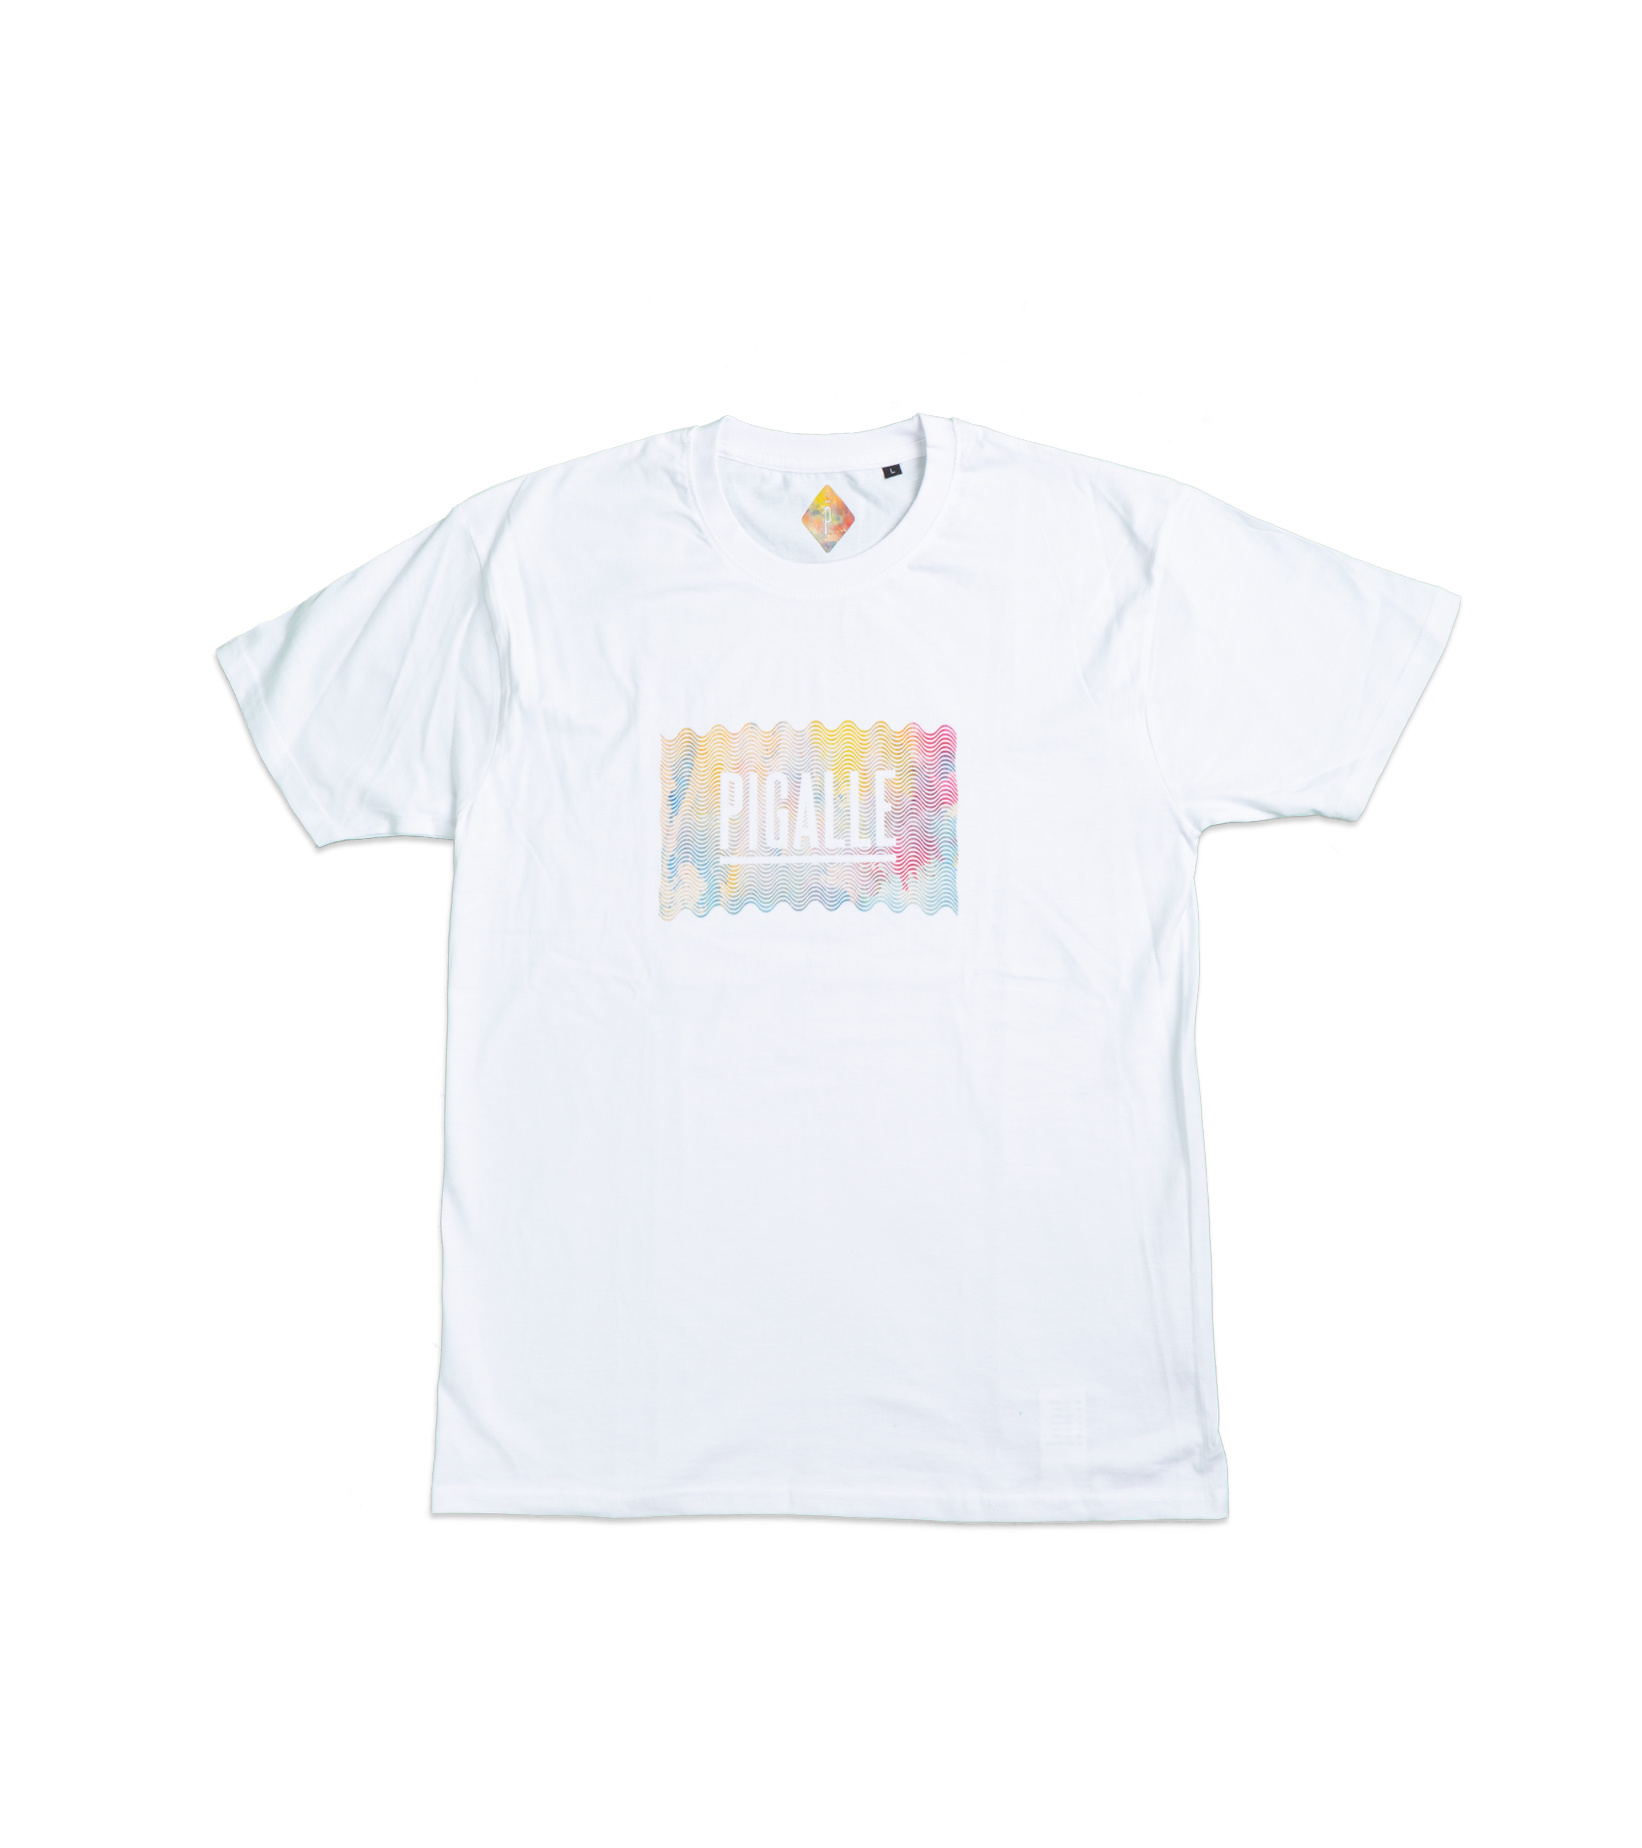 """Tee x Pigalle """"White""""-1"""